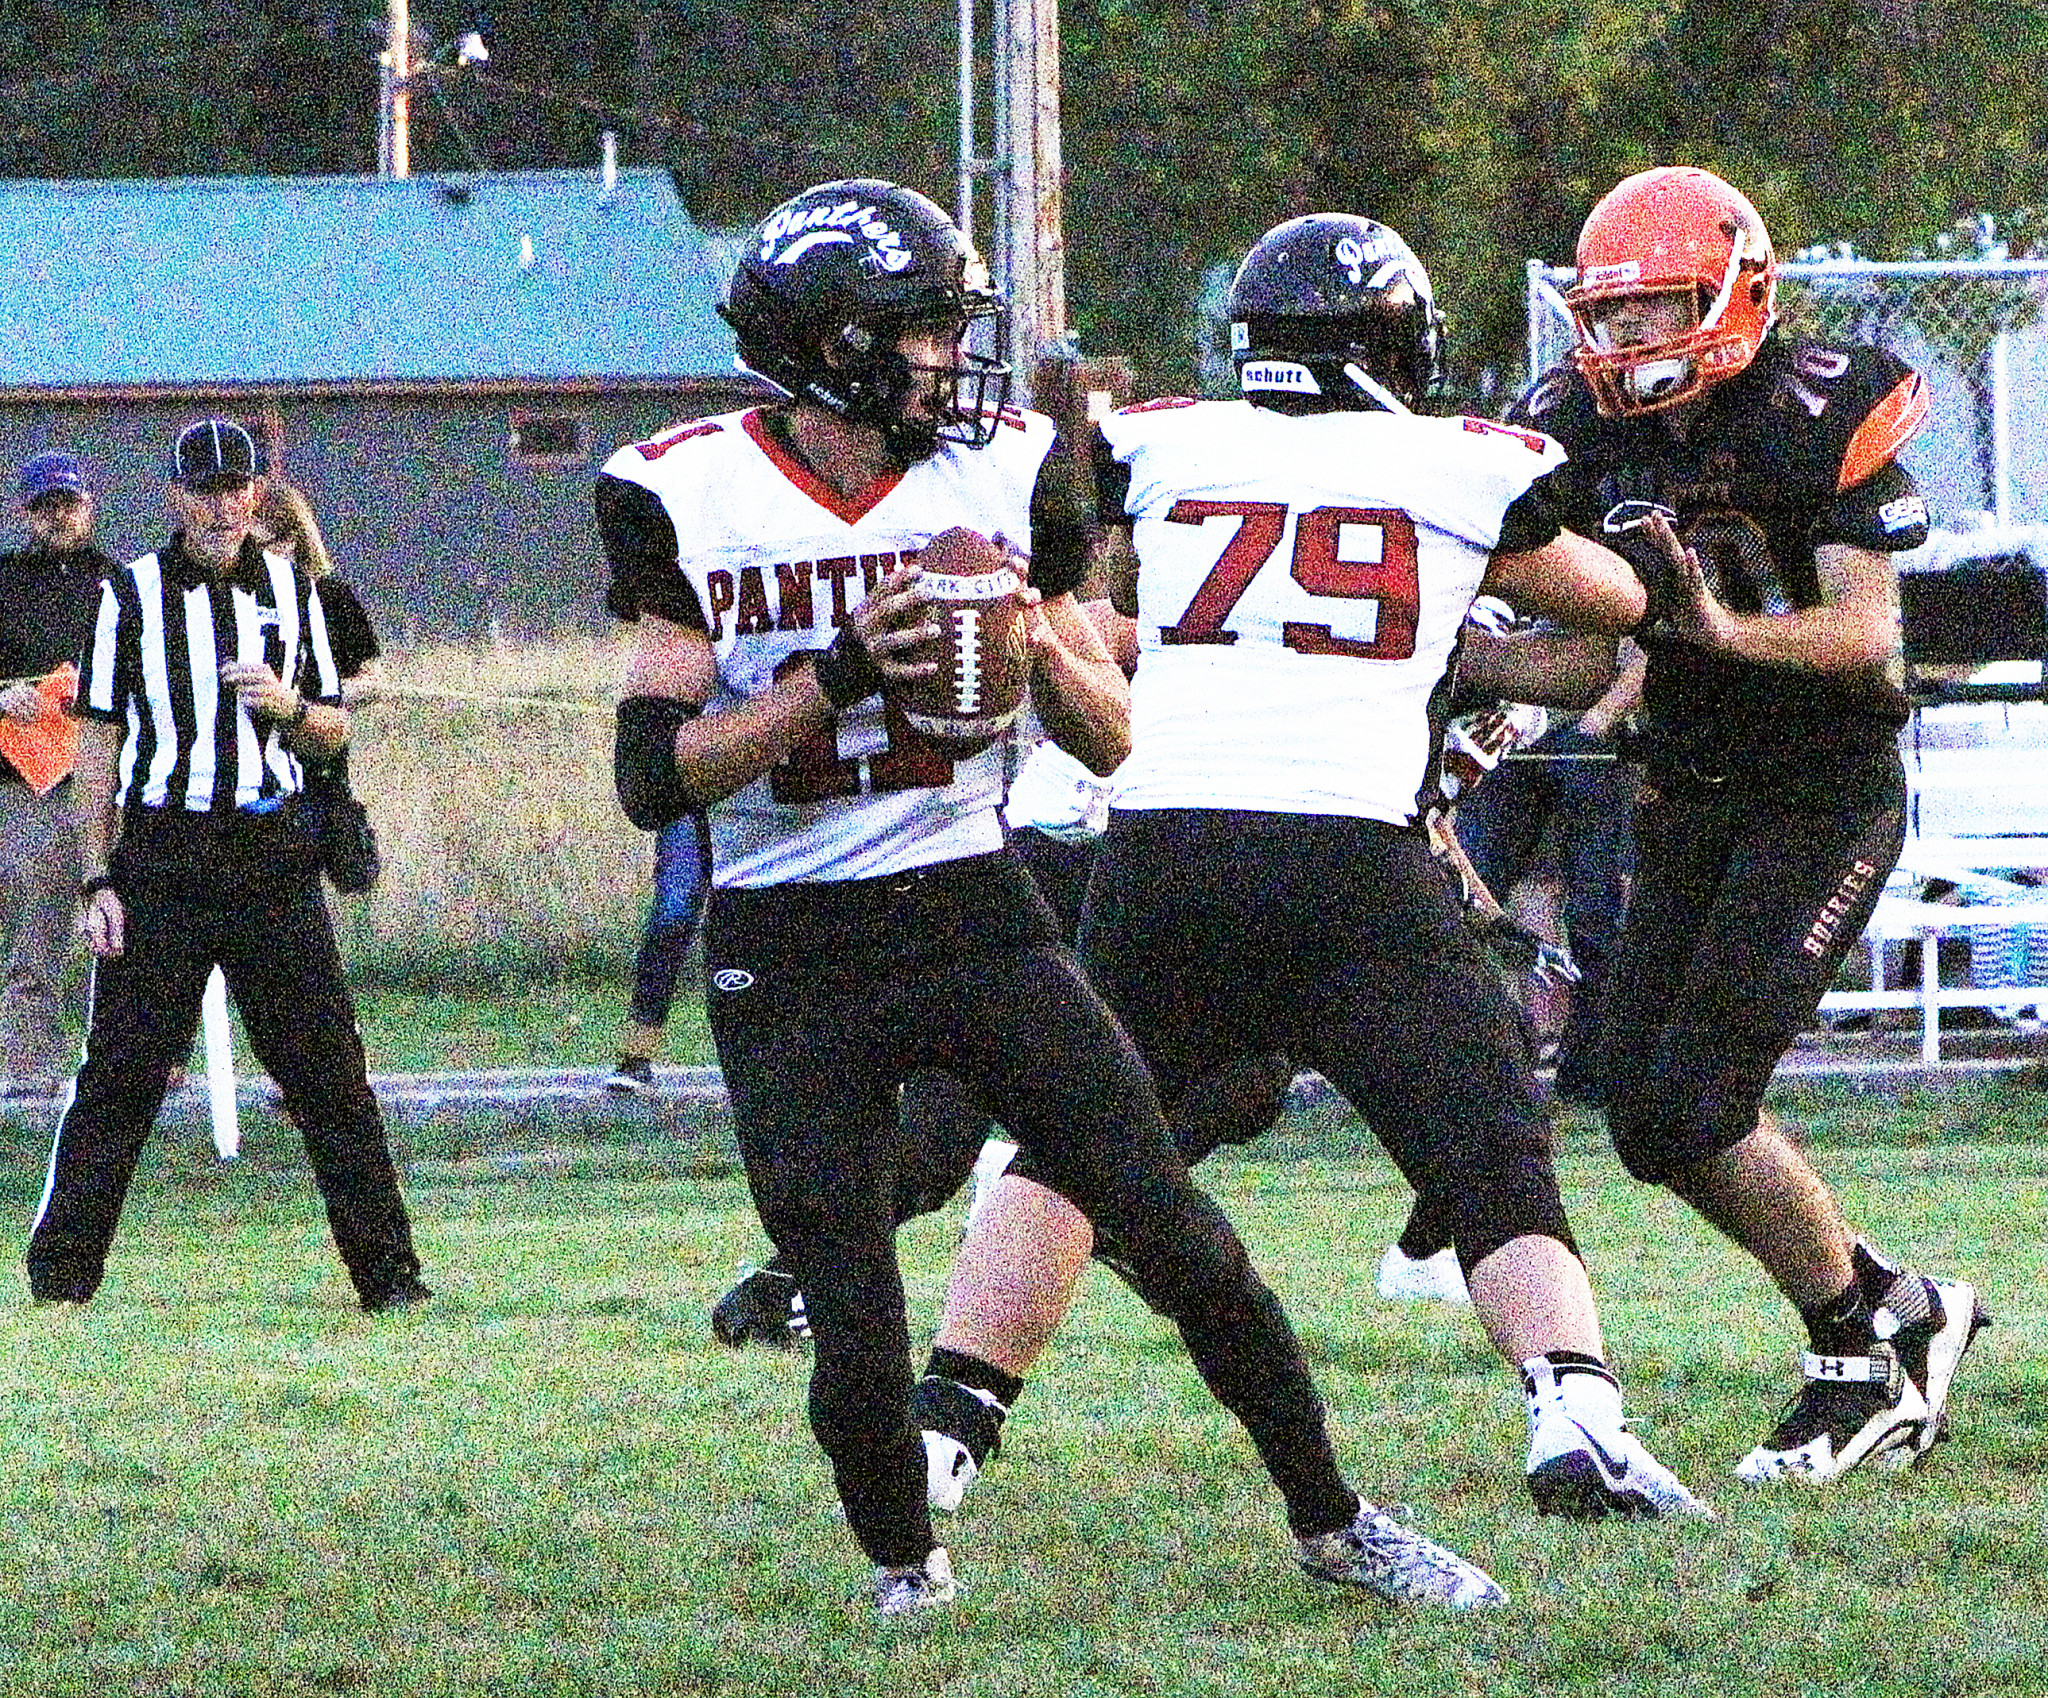 Park City's Connor McNeil drops back to pass. |SCN photo by Mikaela Koski